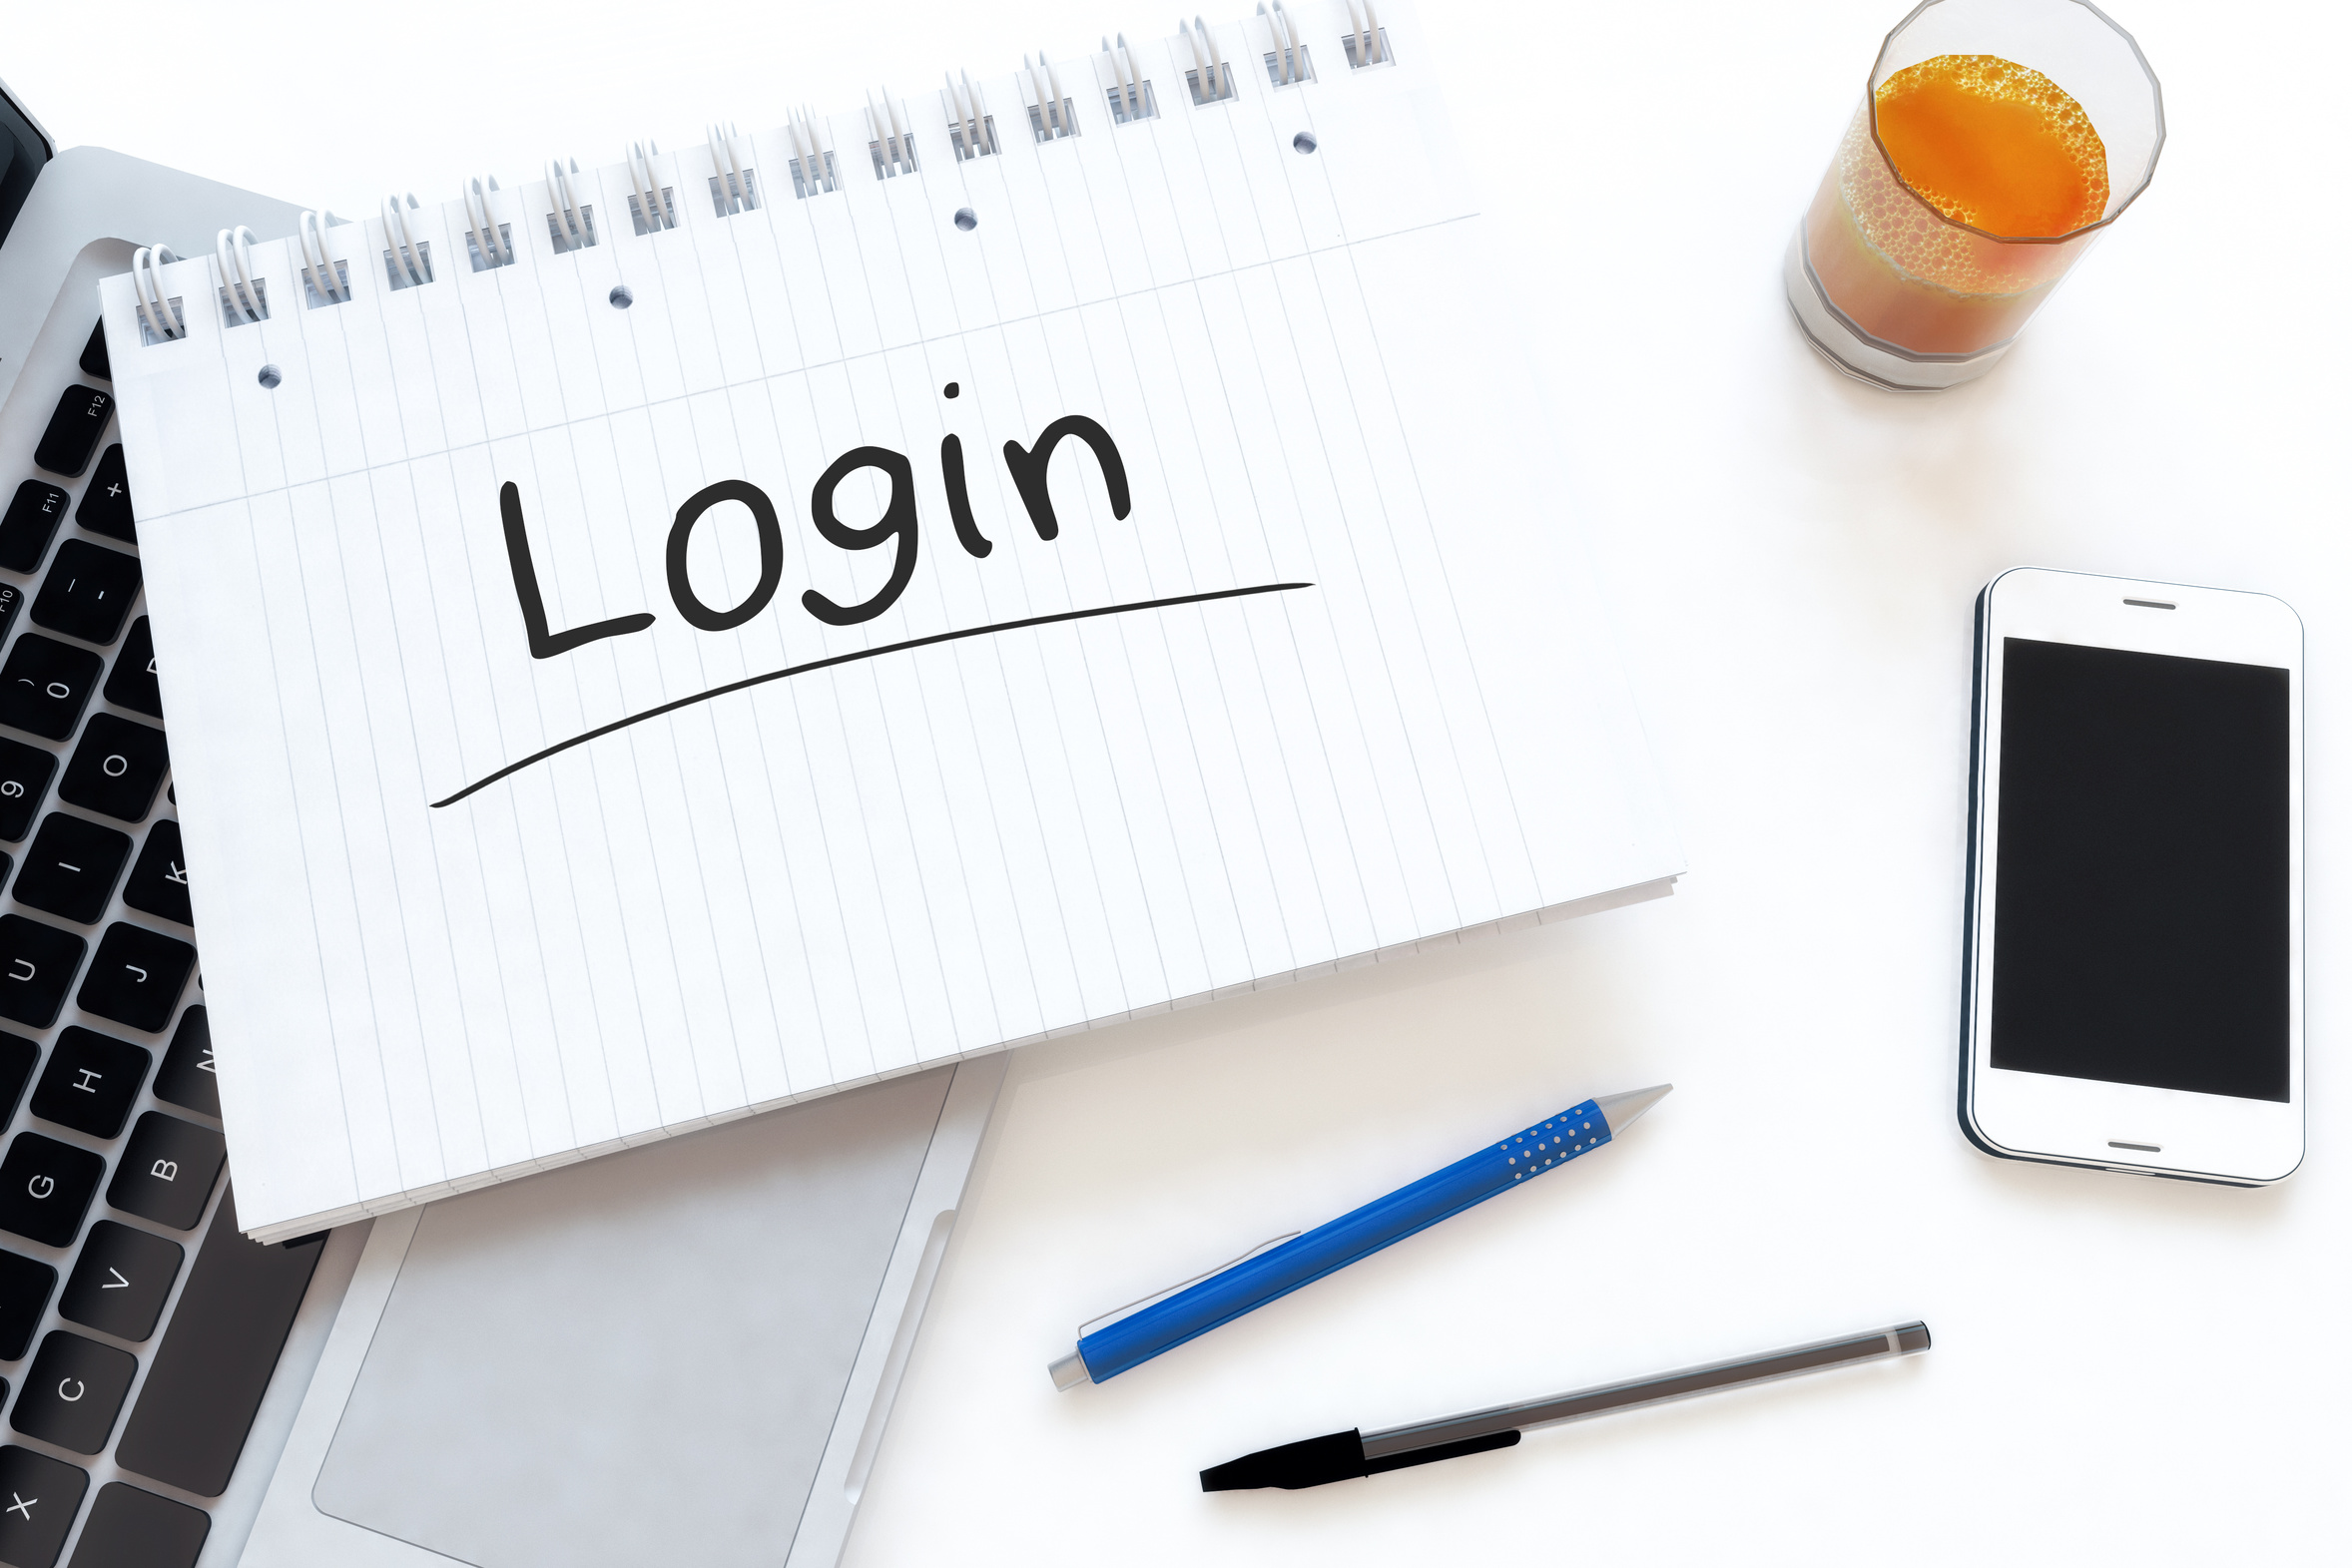 Image of a notepad with the text Login written on it